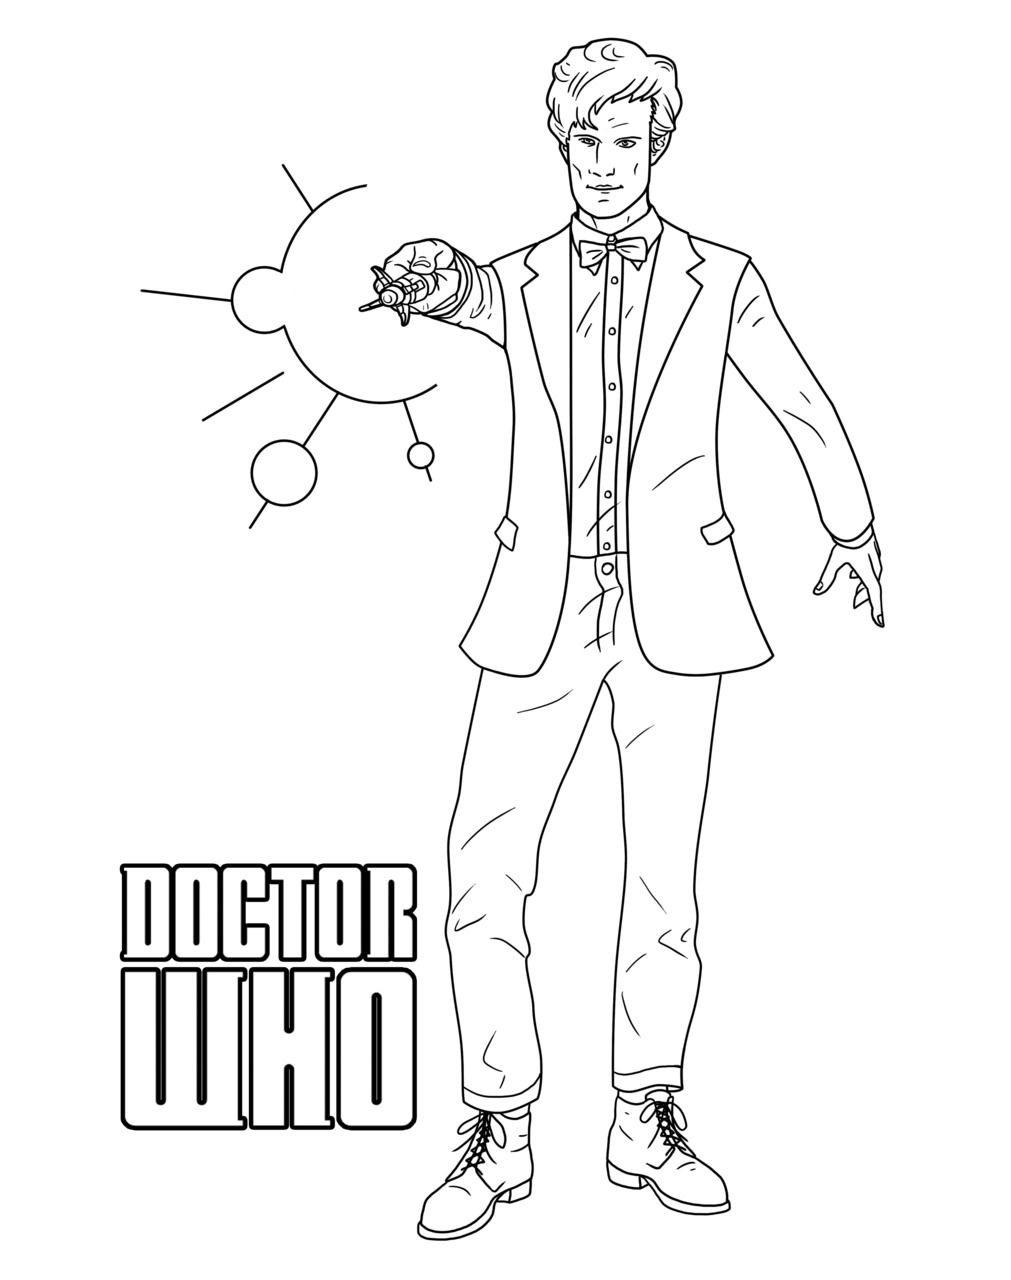 11th Doctor Coloring Page For Our Whovian Friends Colouring Pages Coloring Pages Doctor Who